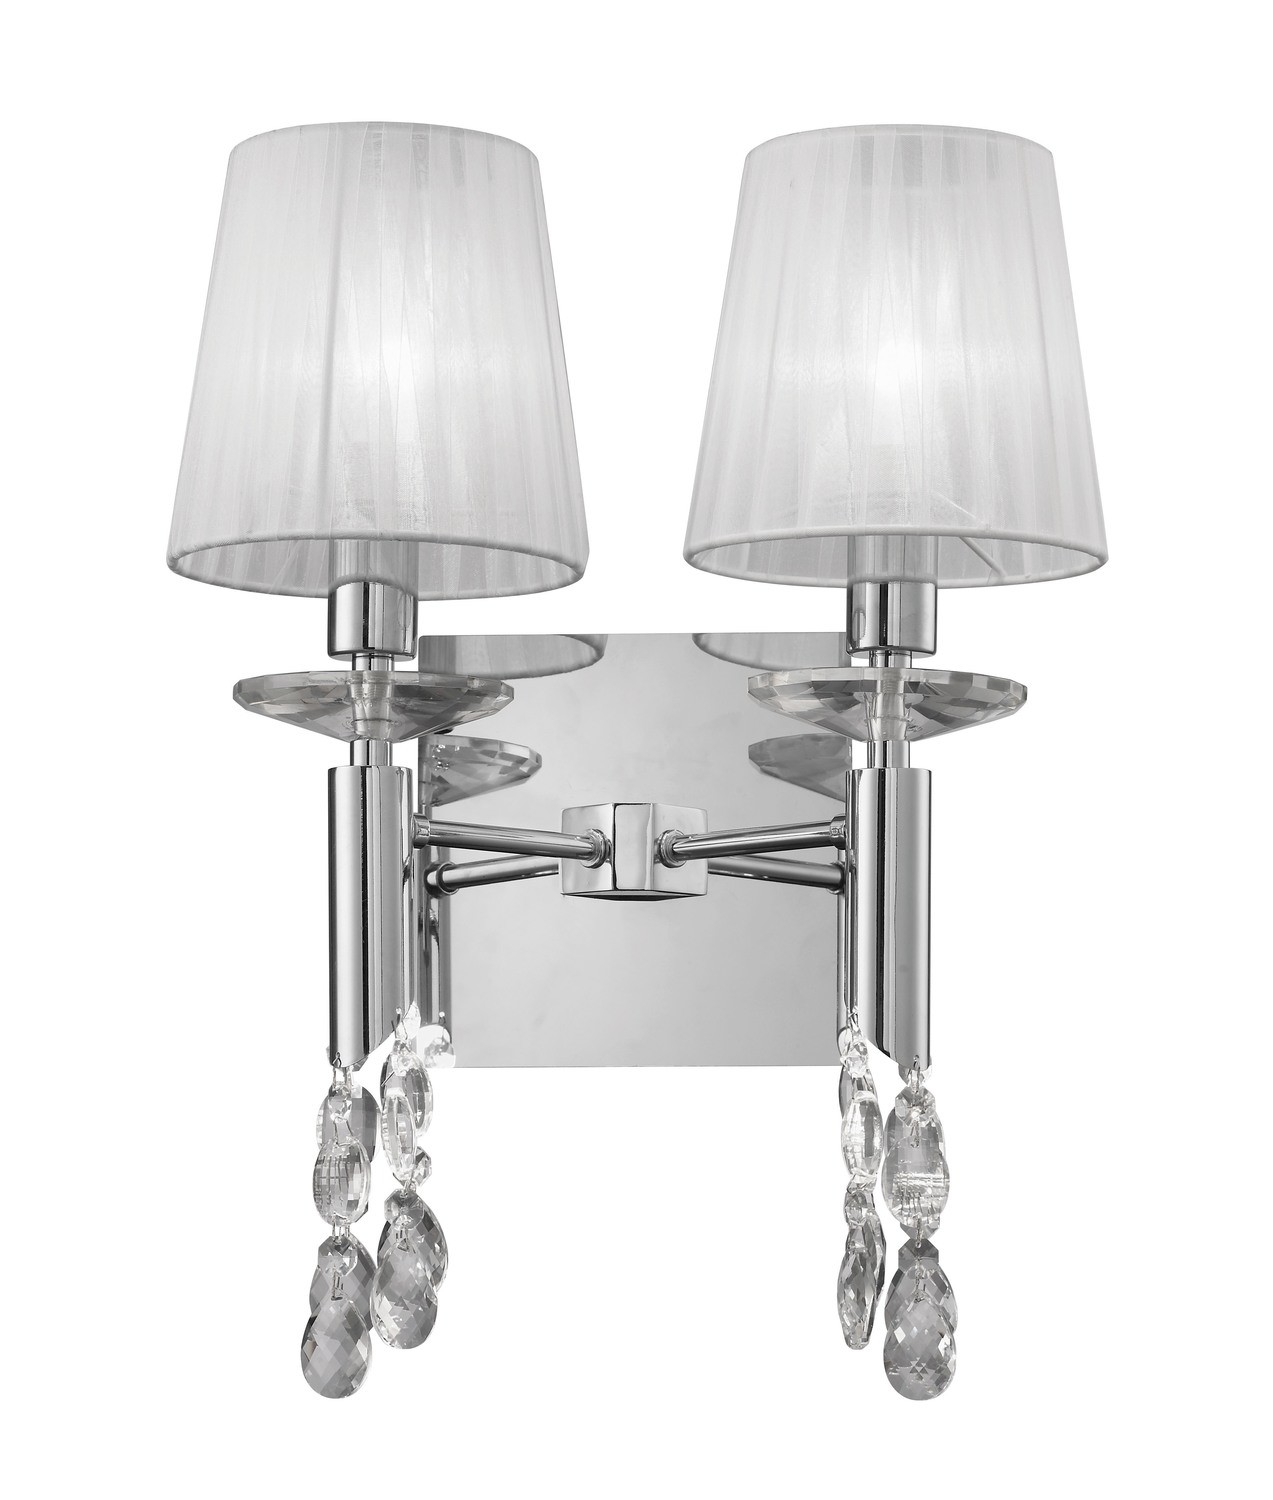 Tiffany Wall Lamp Switched 2+2 Light E14+G9, Polished Chrome With White Shades & Clear Crystal